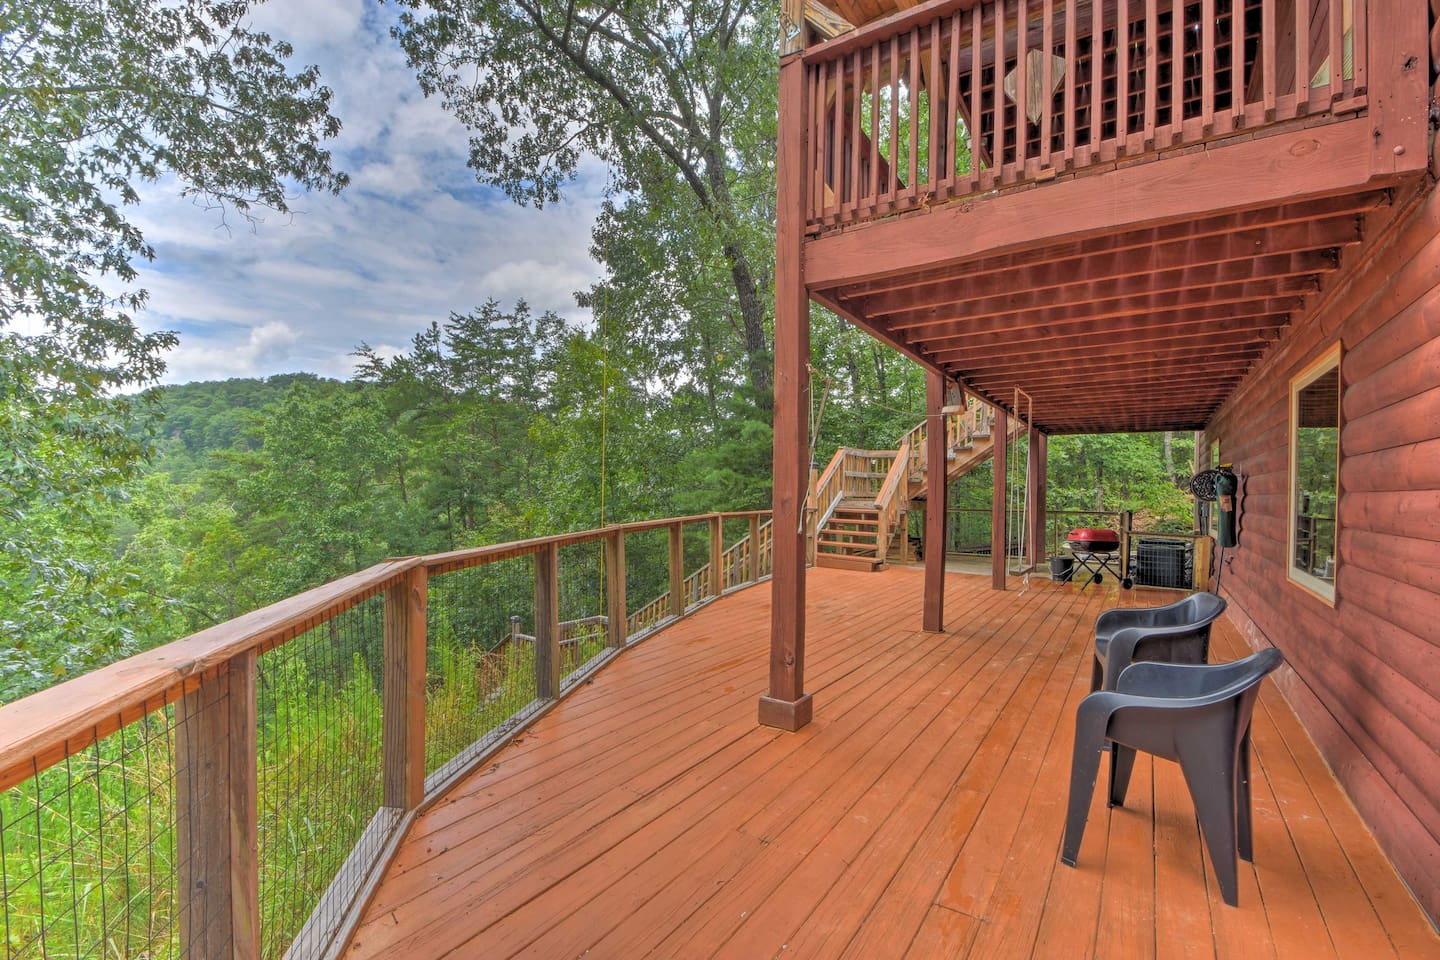 Have a relaxing Georgia getaway at this charming 3 bedroom, 2.5-bath cabin.